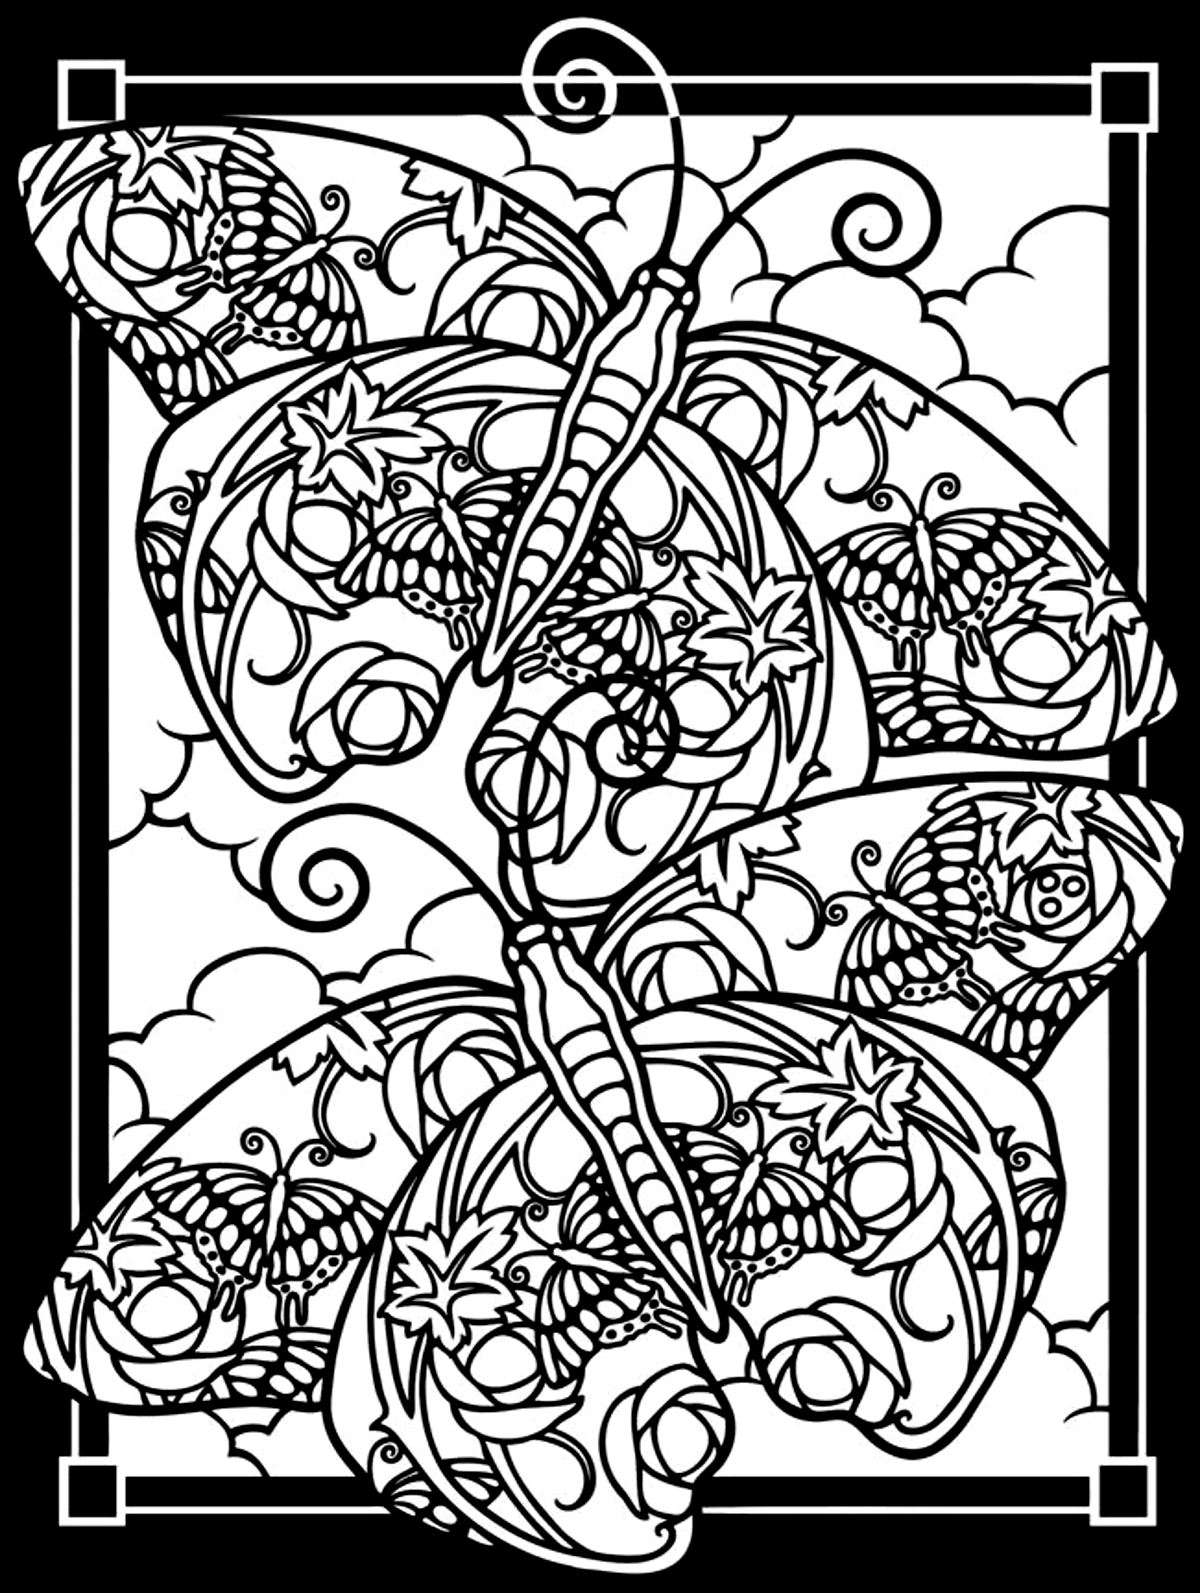 coloring art make any picture a coloring page with ipiccy ipiccy art coloring